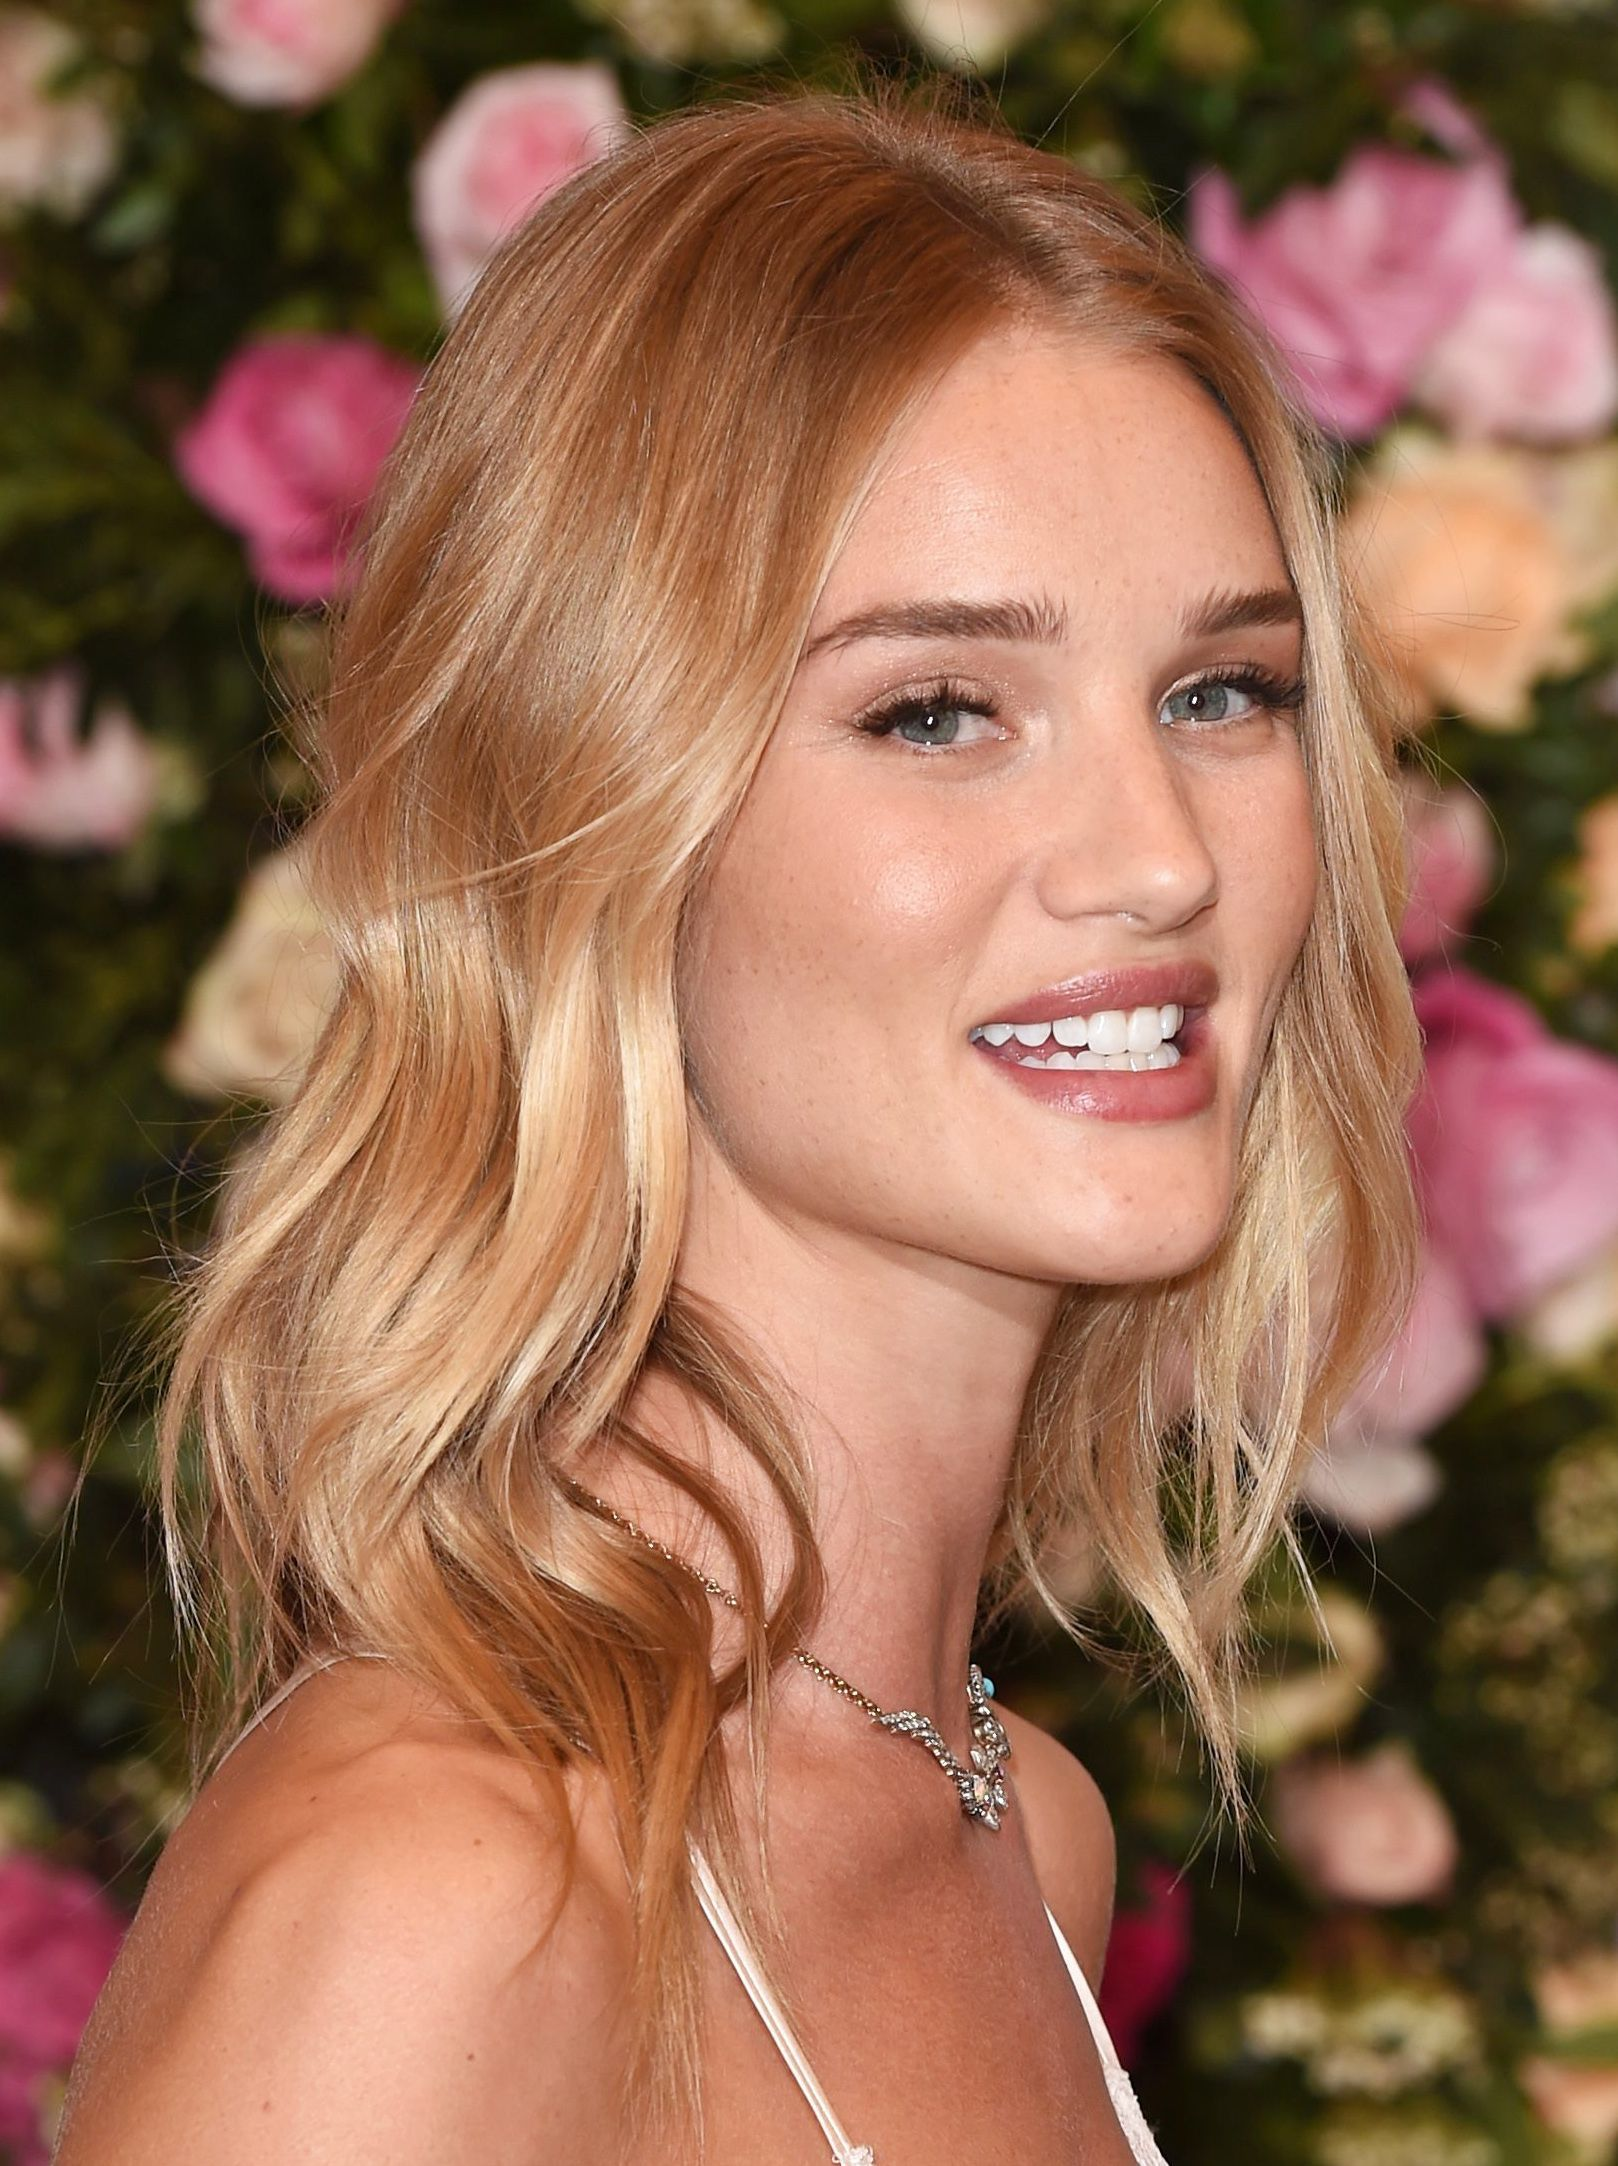 Brown hair with blonde highlights: Rosie Huntington-Whitely with strawberry blonde highlighted shoulder length hair in soft curls, standing against a wall of pink flowers